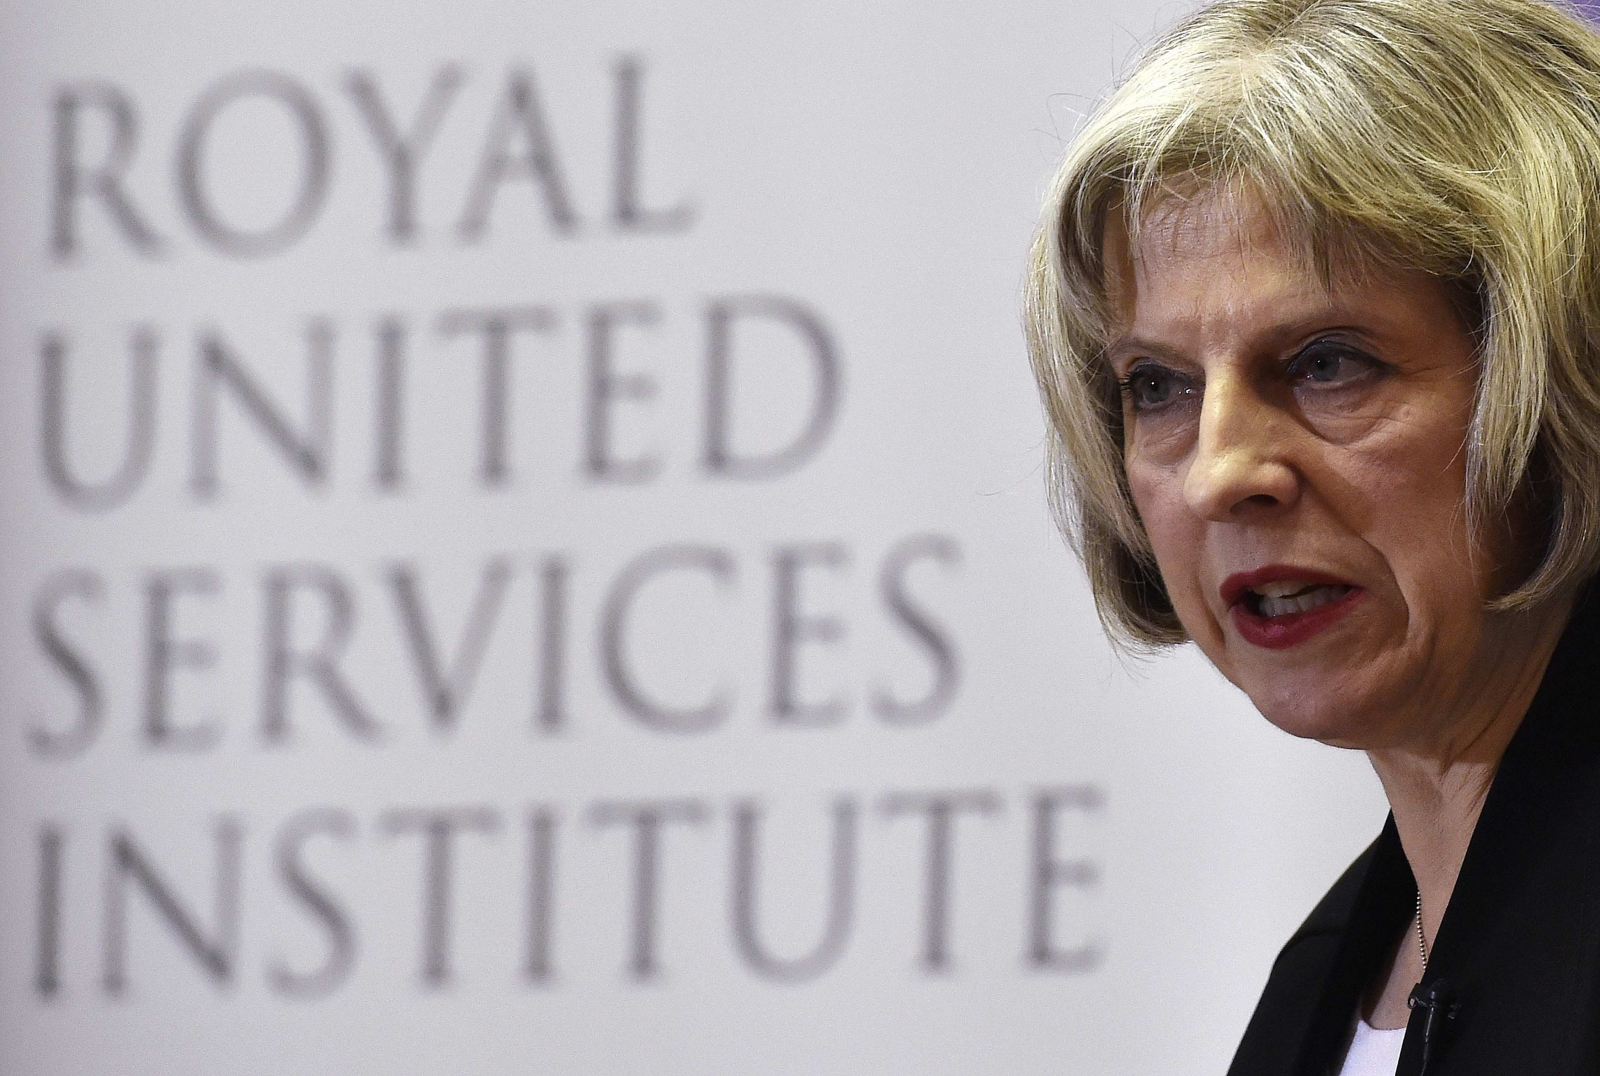 Theresa May: UK Faces Biggest Threat to its Security since 9/11